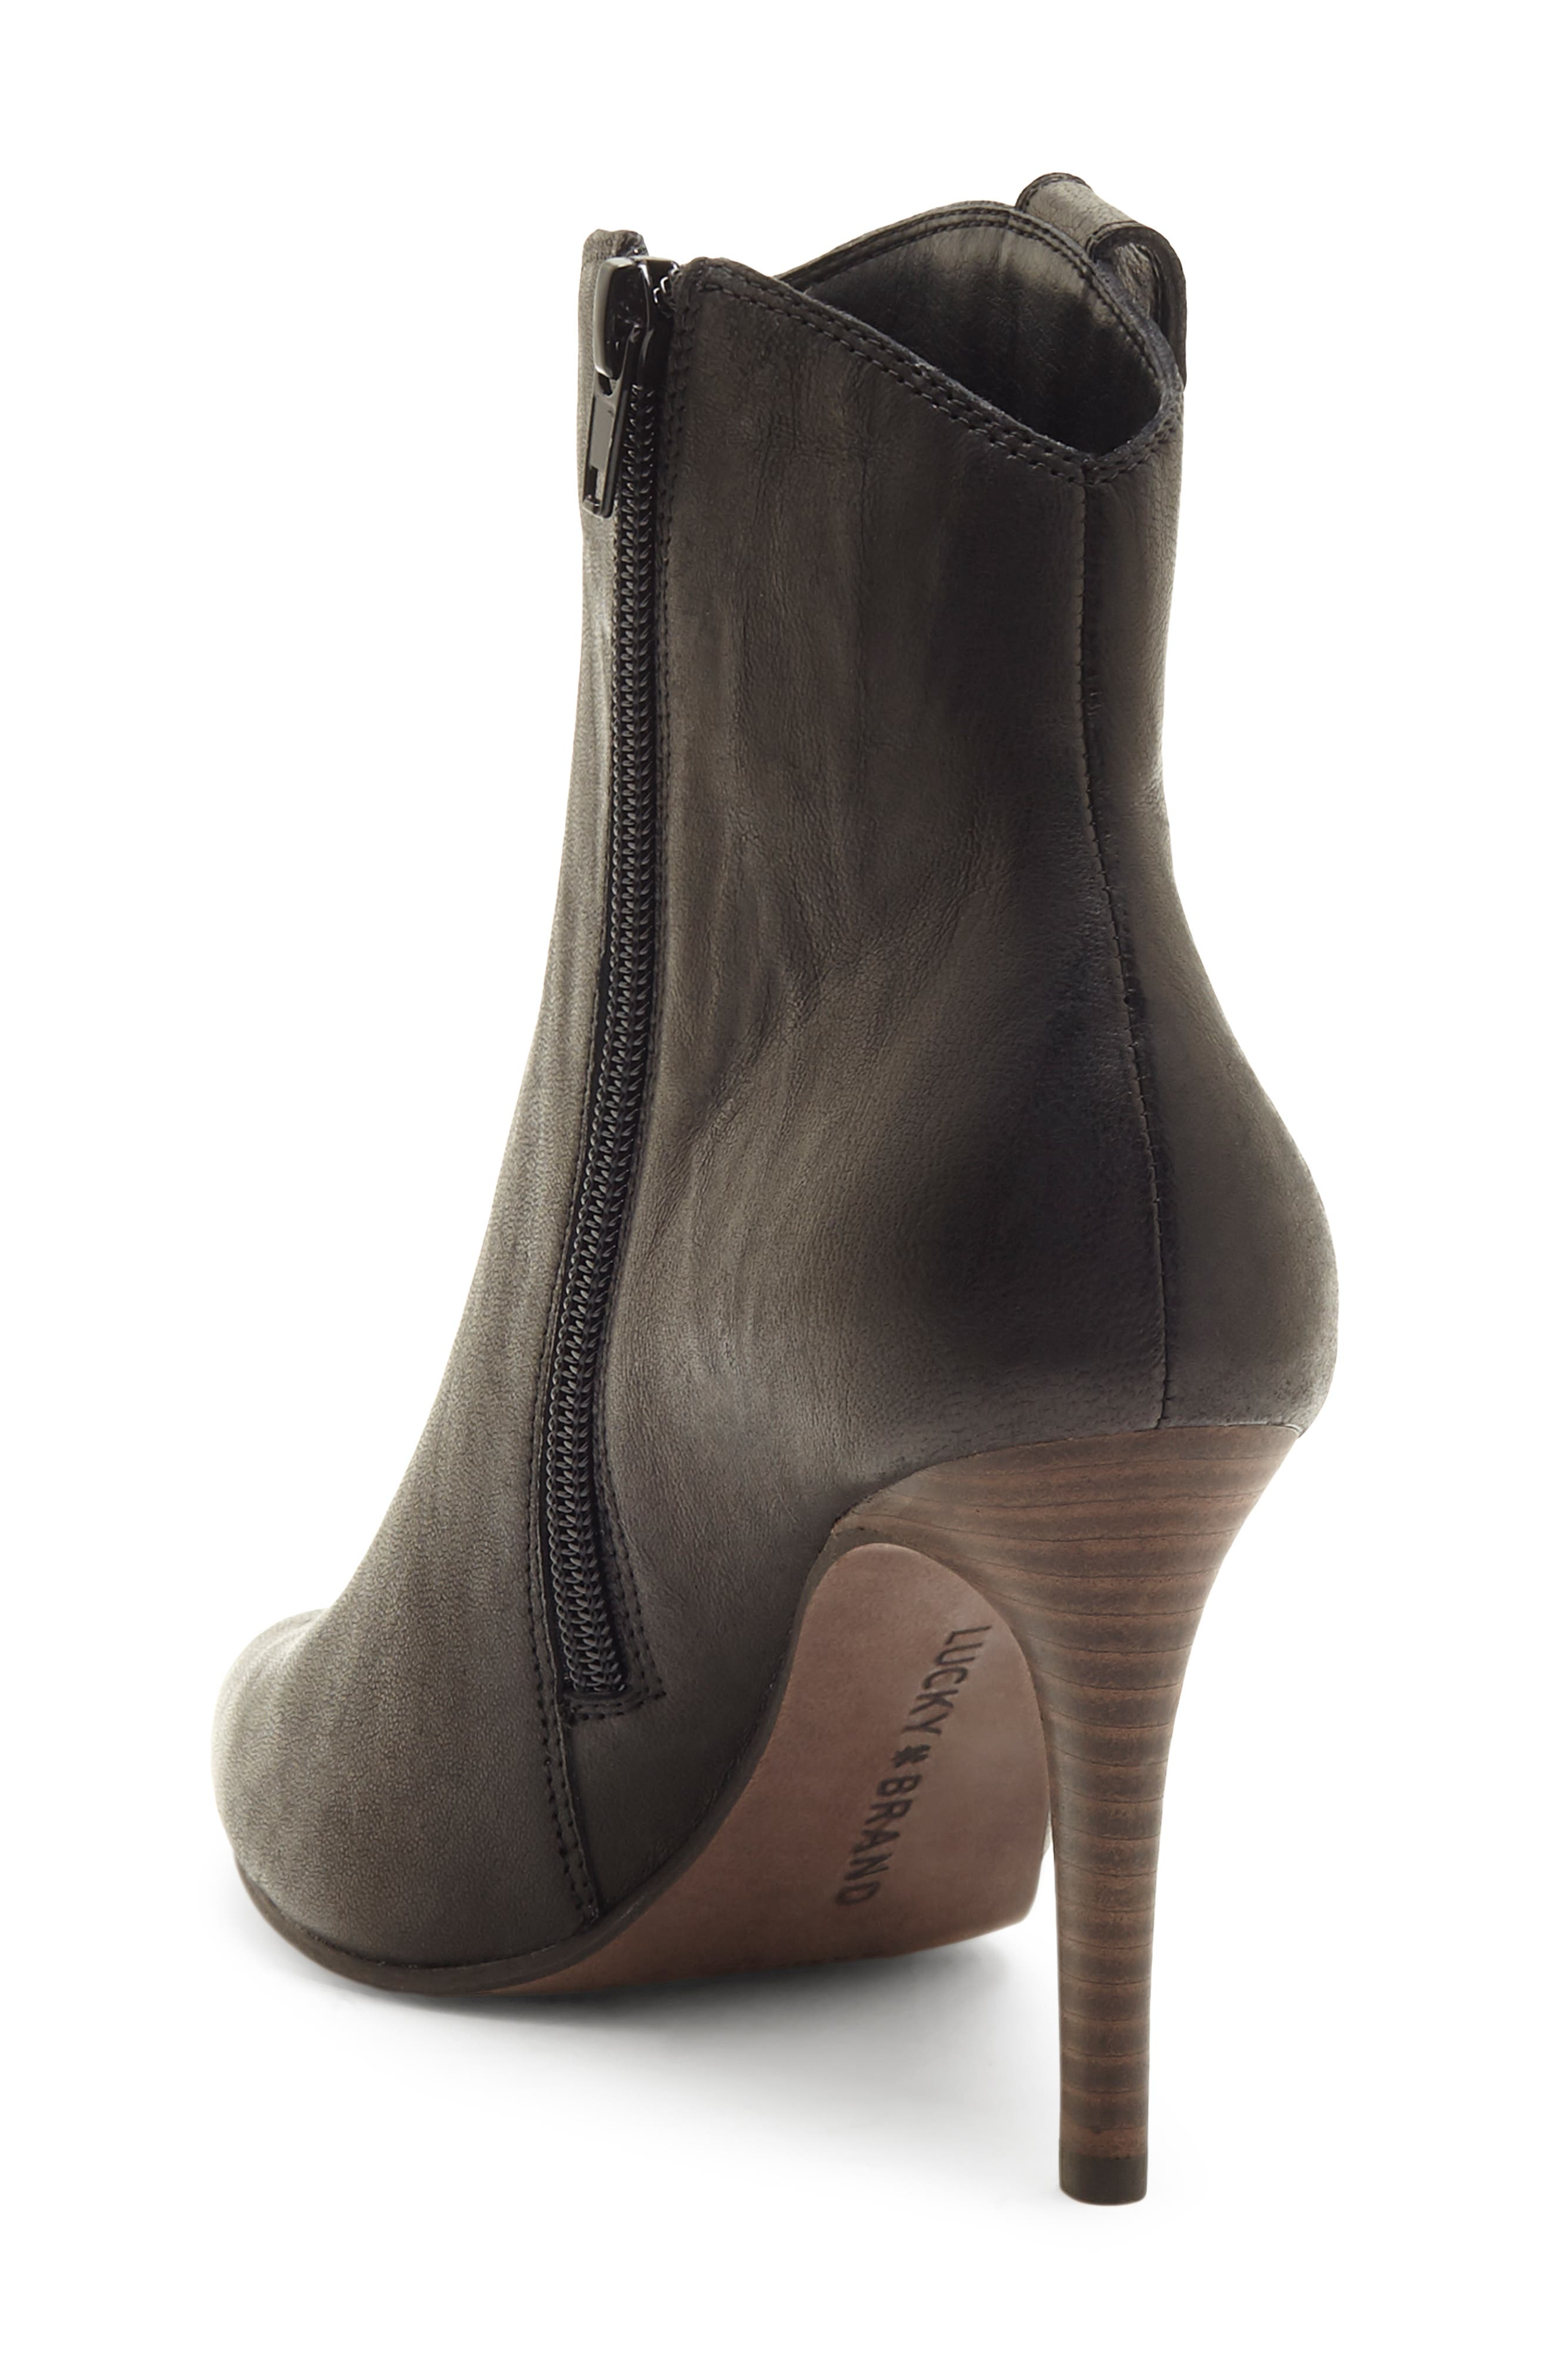 LUCKY BRAND,                             Torince Bootie,                             Alternate thumbnail 2, color,                             200